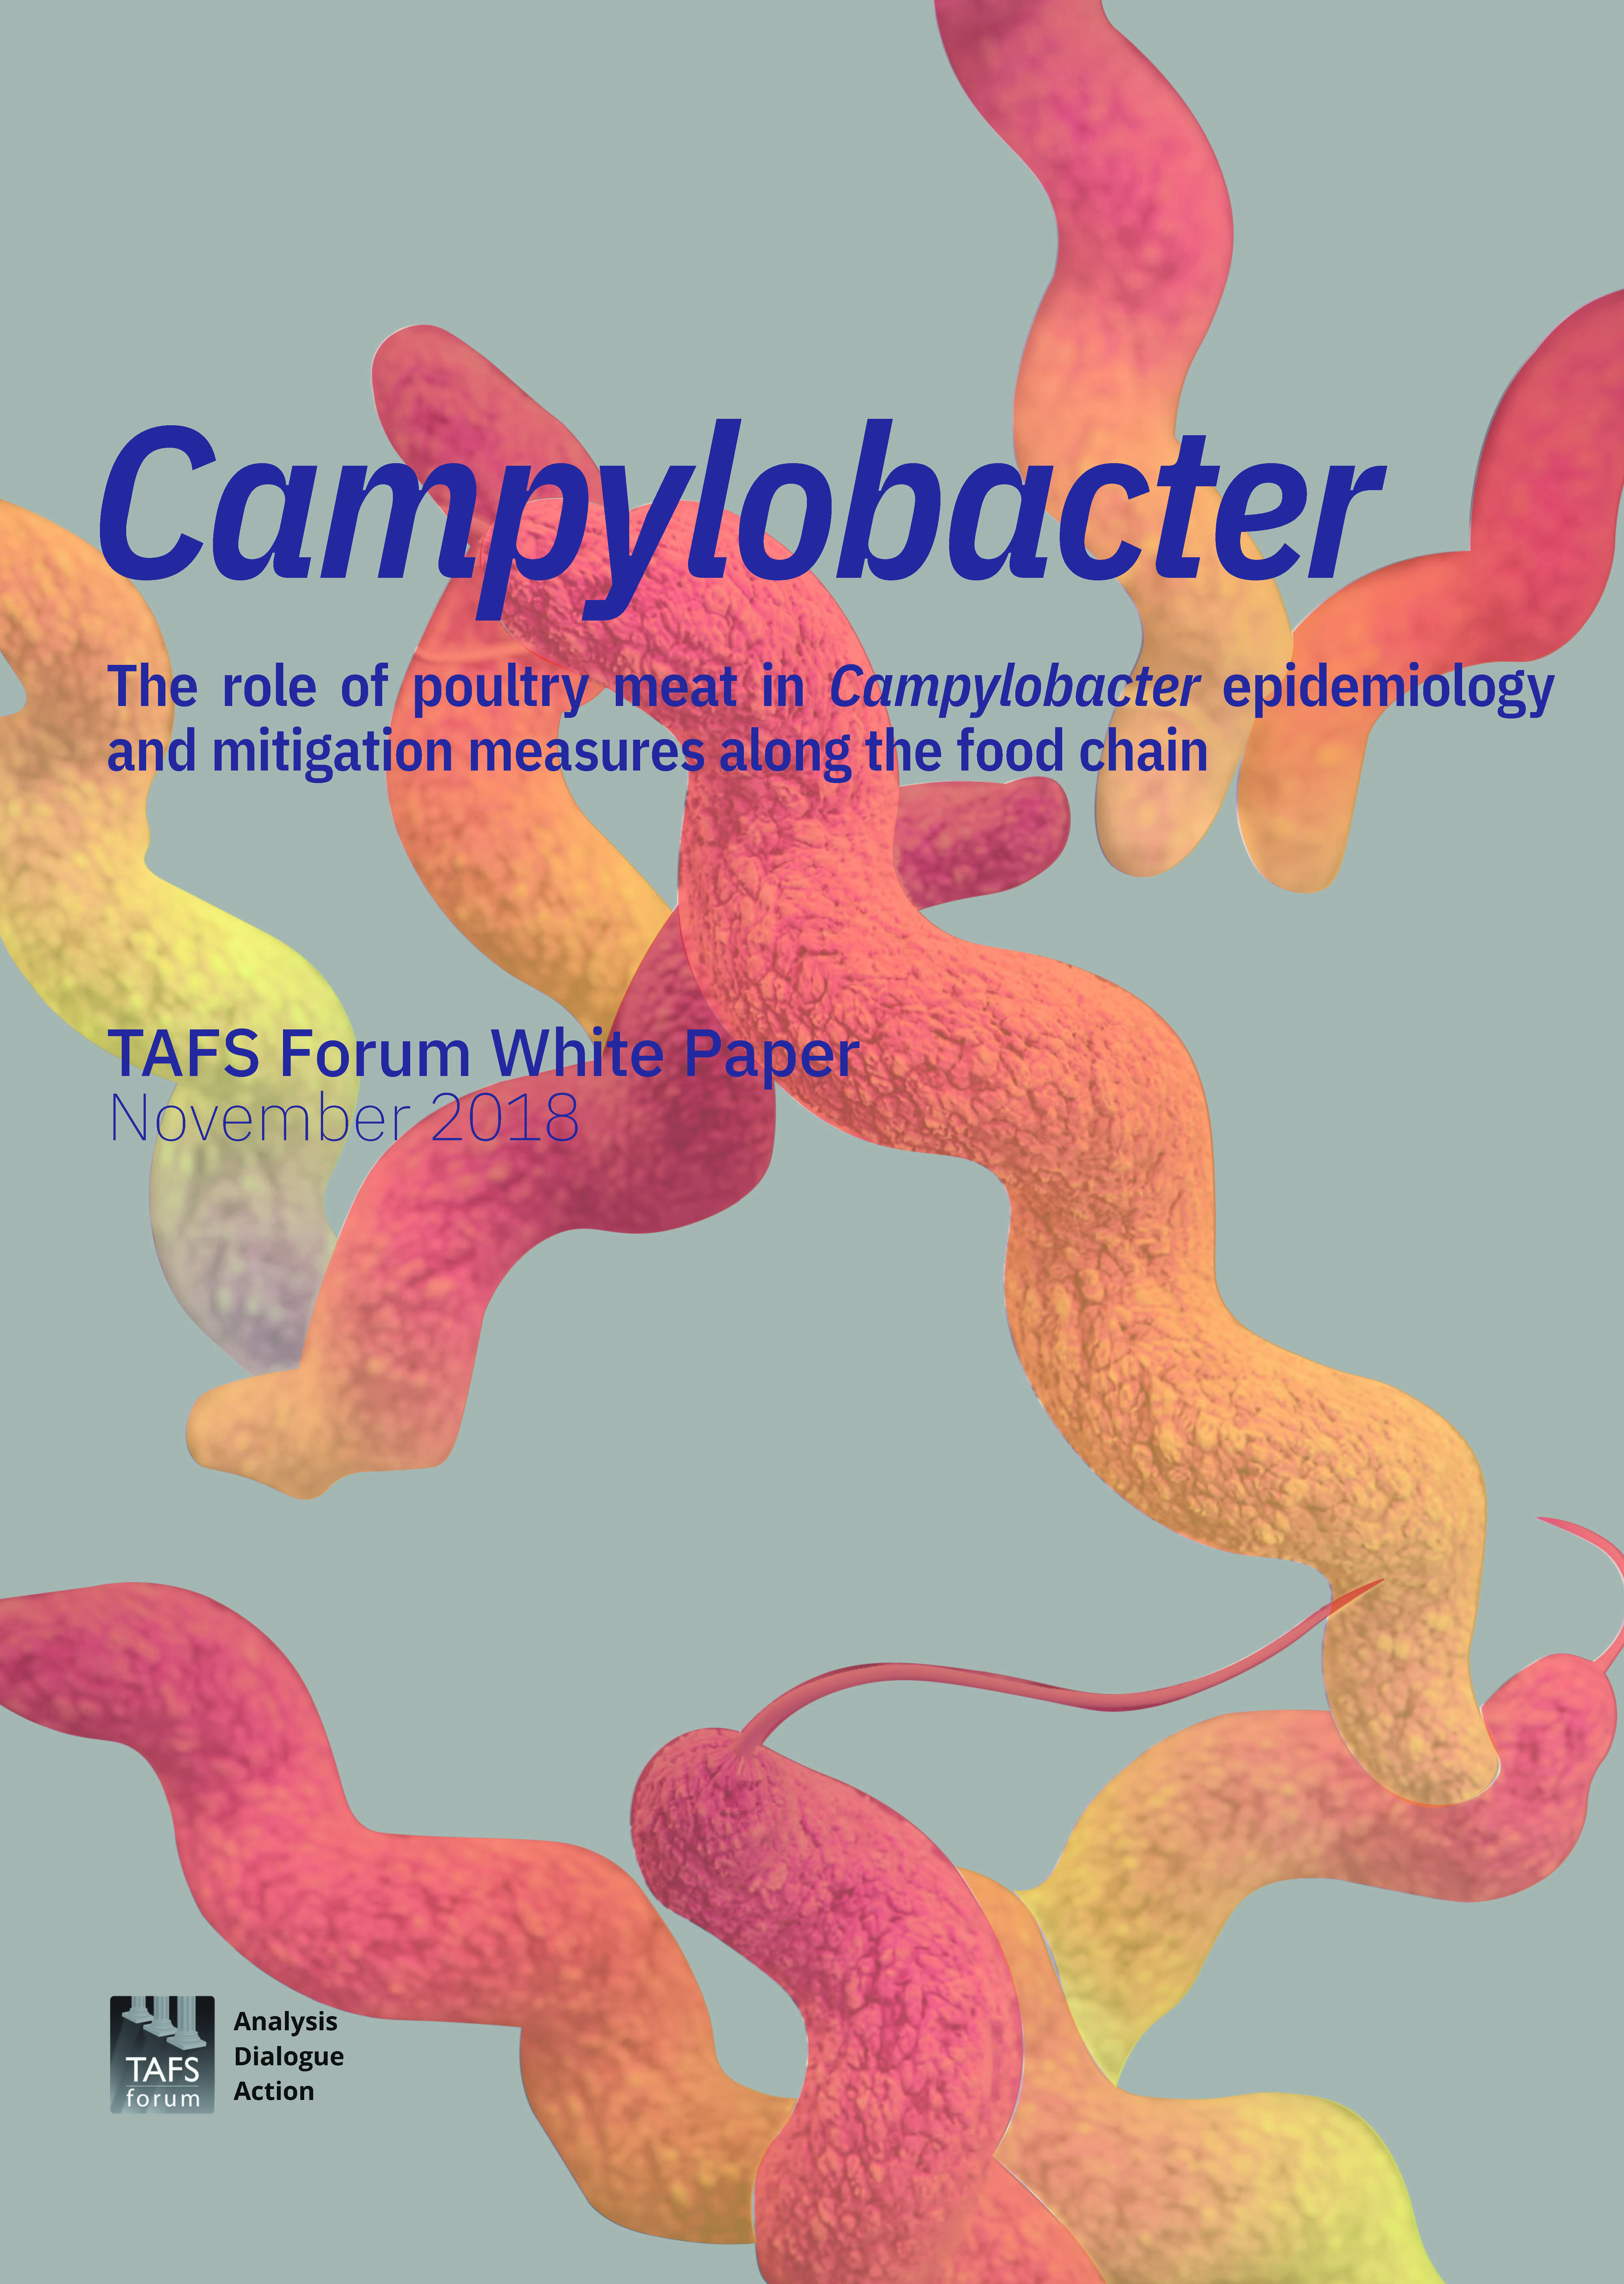 TAFS White Paper Campylobacter Cover